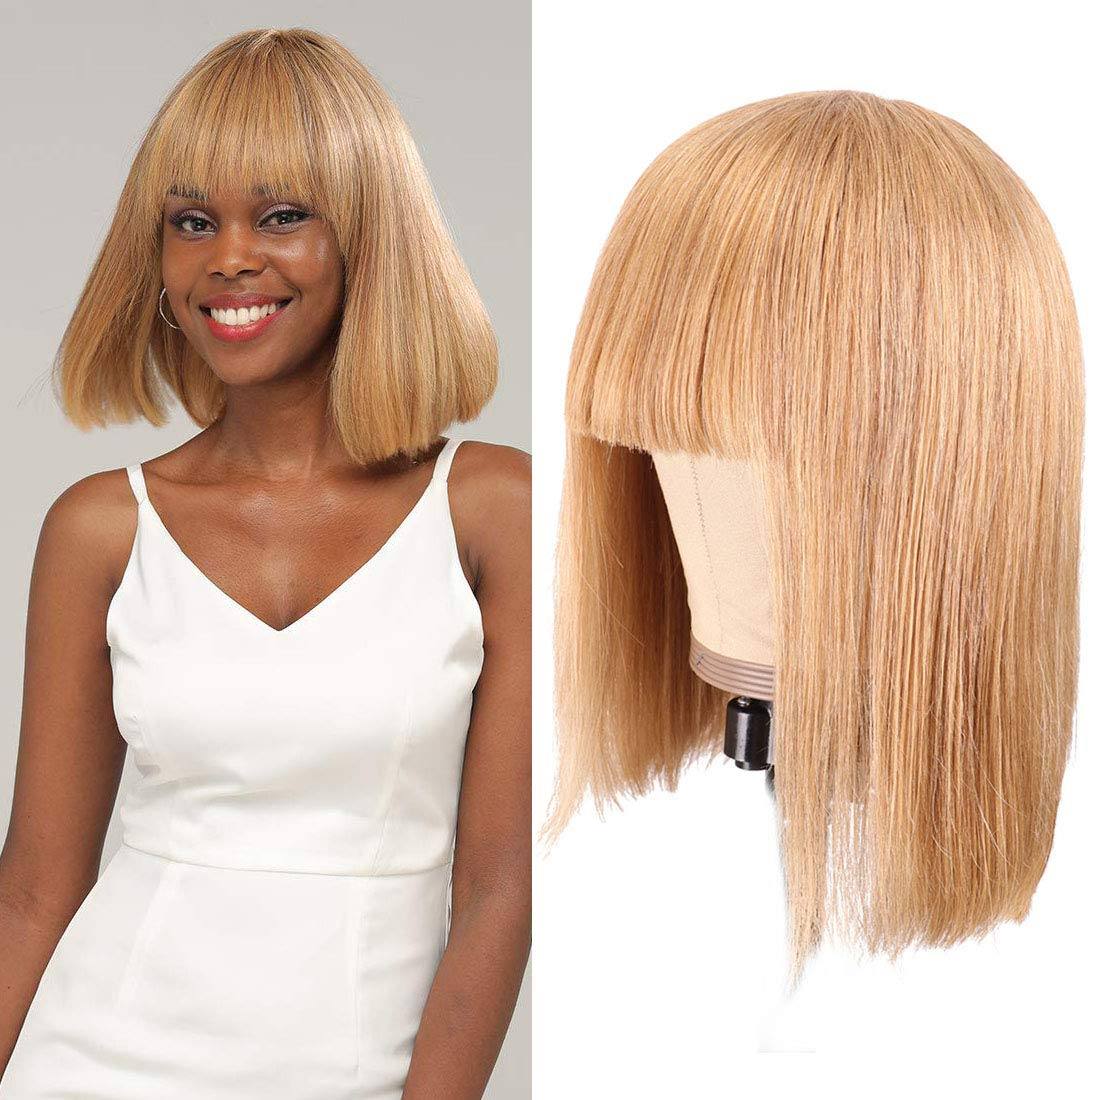 Blonde Wigs for Black Large-scale sale Women #27 Short Bob Human Now on sale Hair